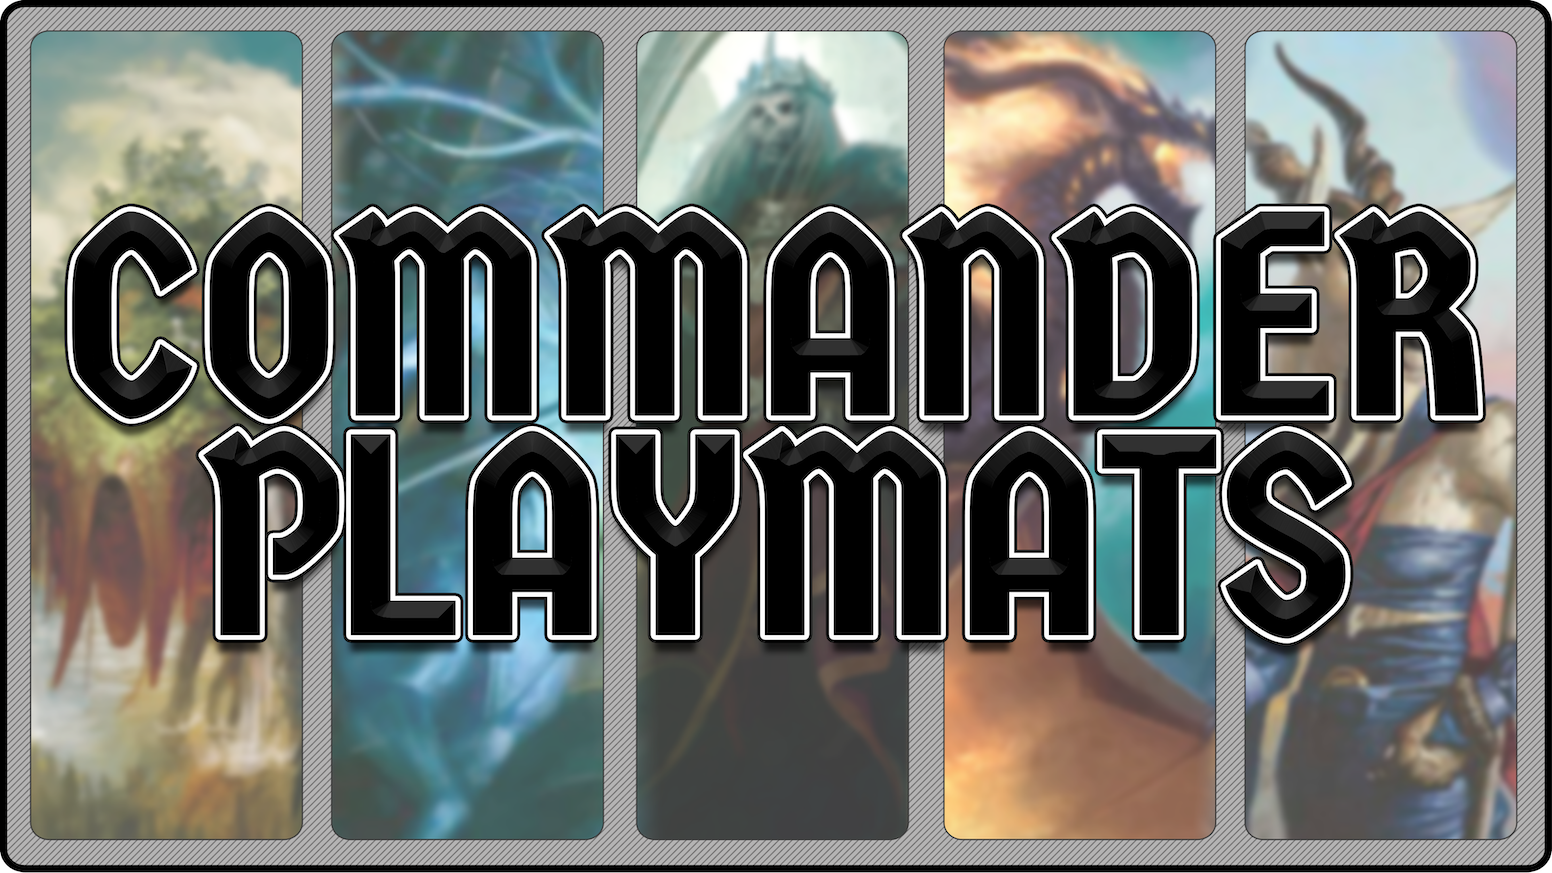 Officially Licensed Magic: the Gathering Playmats for some of the most popular Commanders in the game.